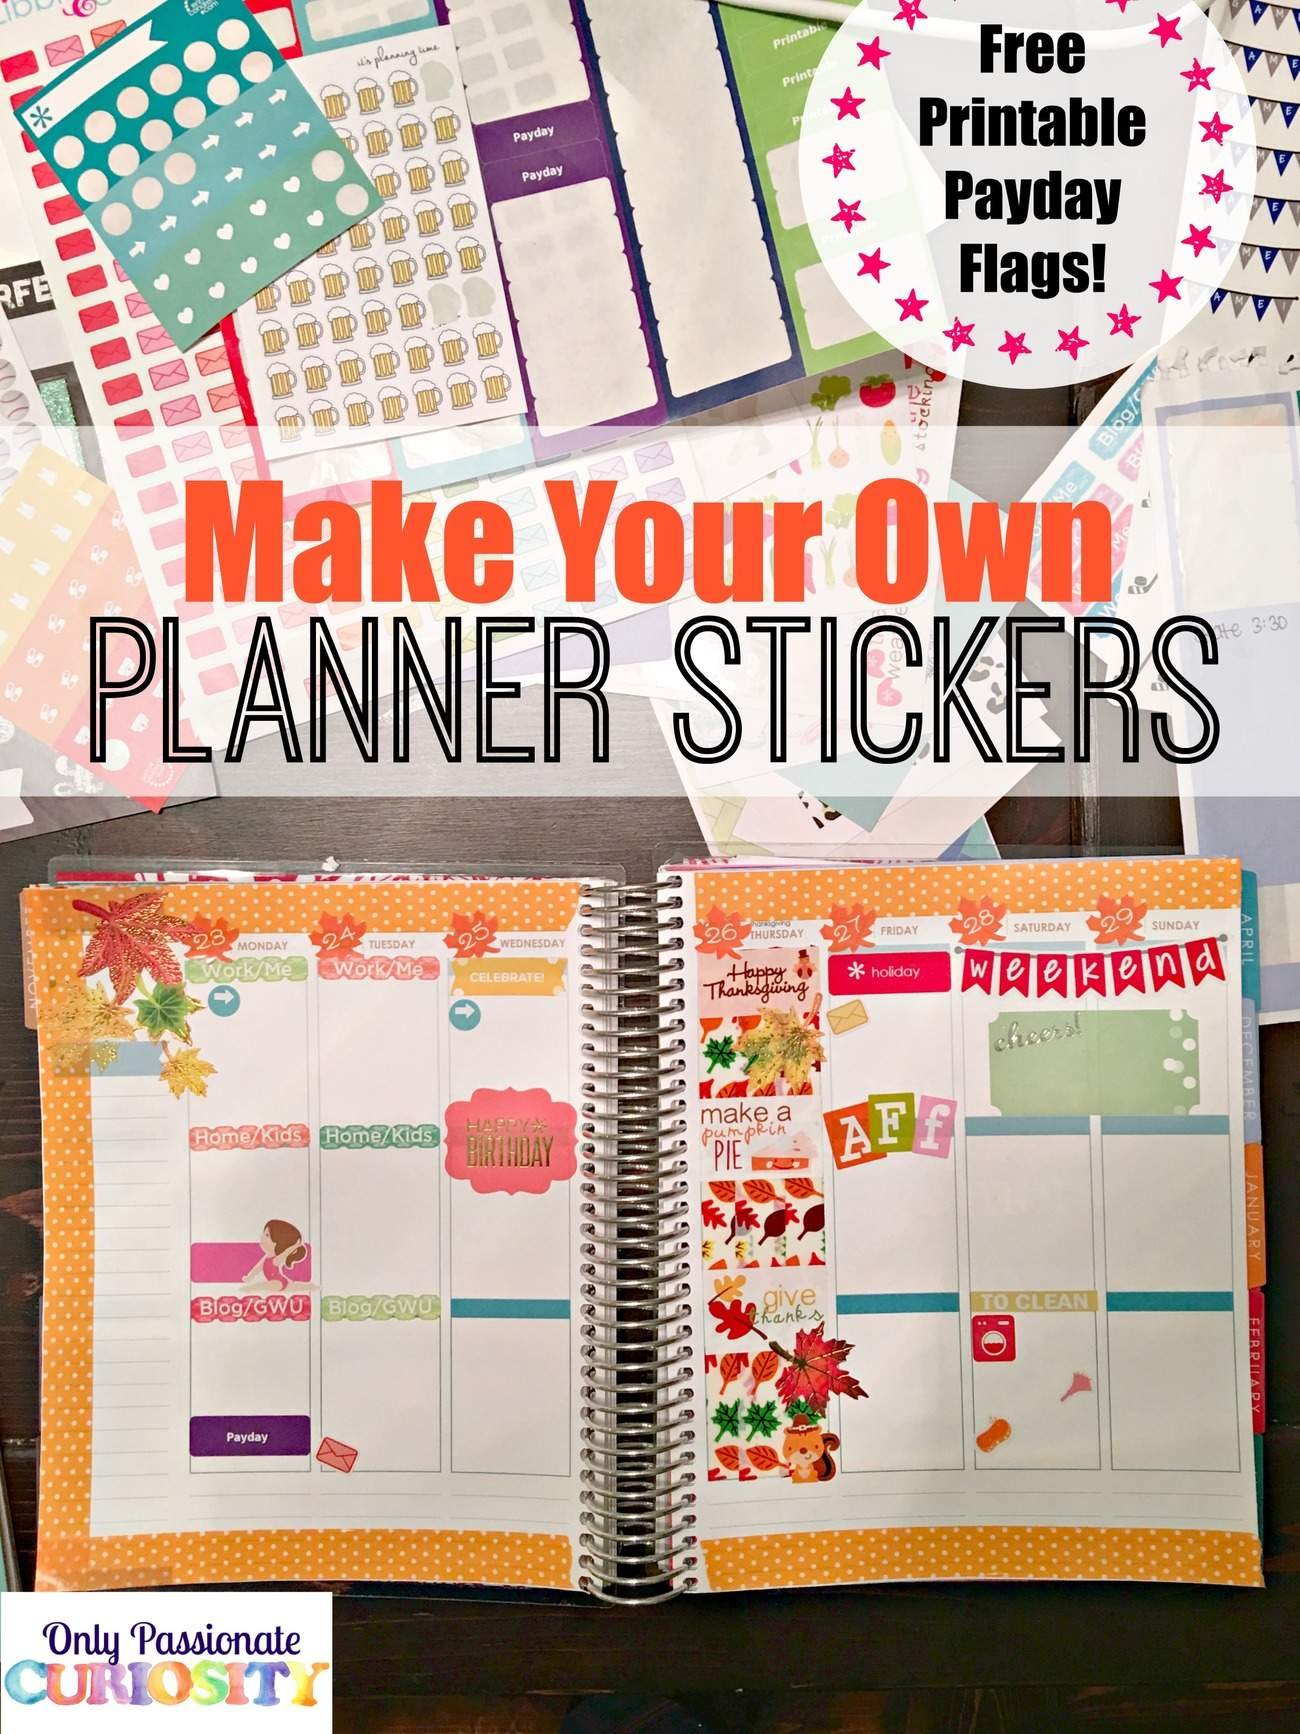 How To Make Planner Stickers With A Cricut - Only with How To Make A Printable Planner Photo